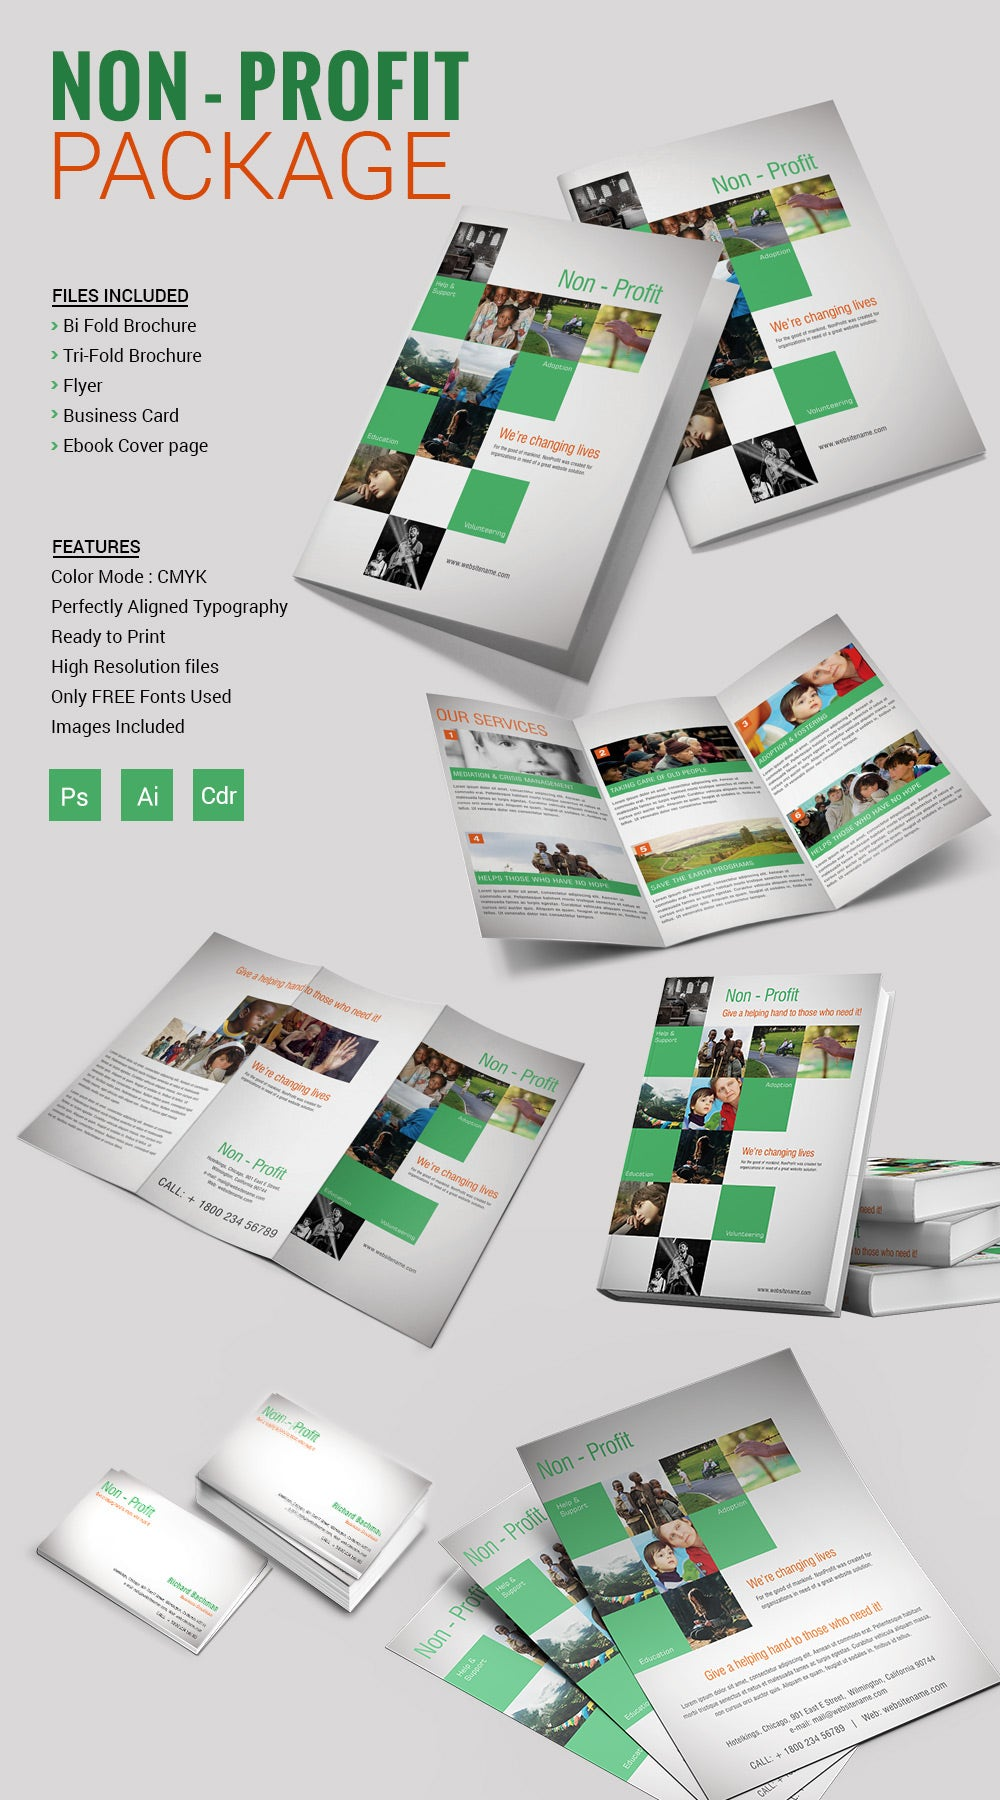 Awesome 1 2 3 Nu Opgaver Kapitel Resume Big 1 Page Resume Templates Regular 1 Week Calendar Template 1.5 Button Template Youthful 10 Best Resume Templates Brown100 Chart Template Tri Fold Brochure Template \u2013 45  Free Word, PDF, PSD, EPS ..